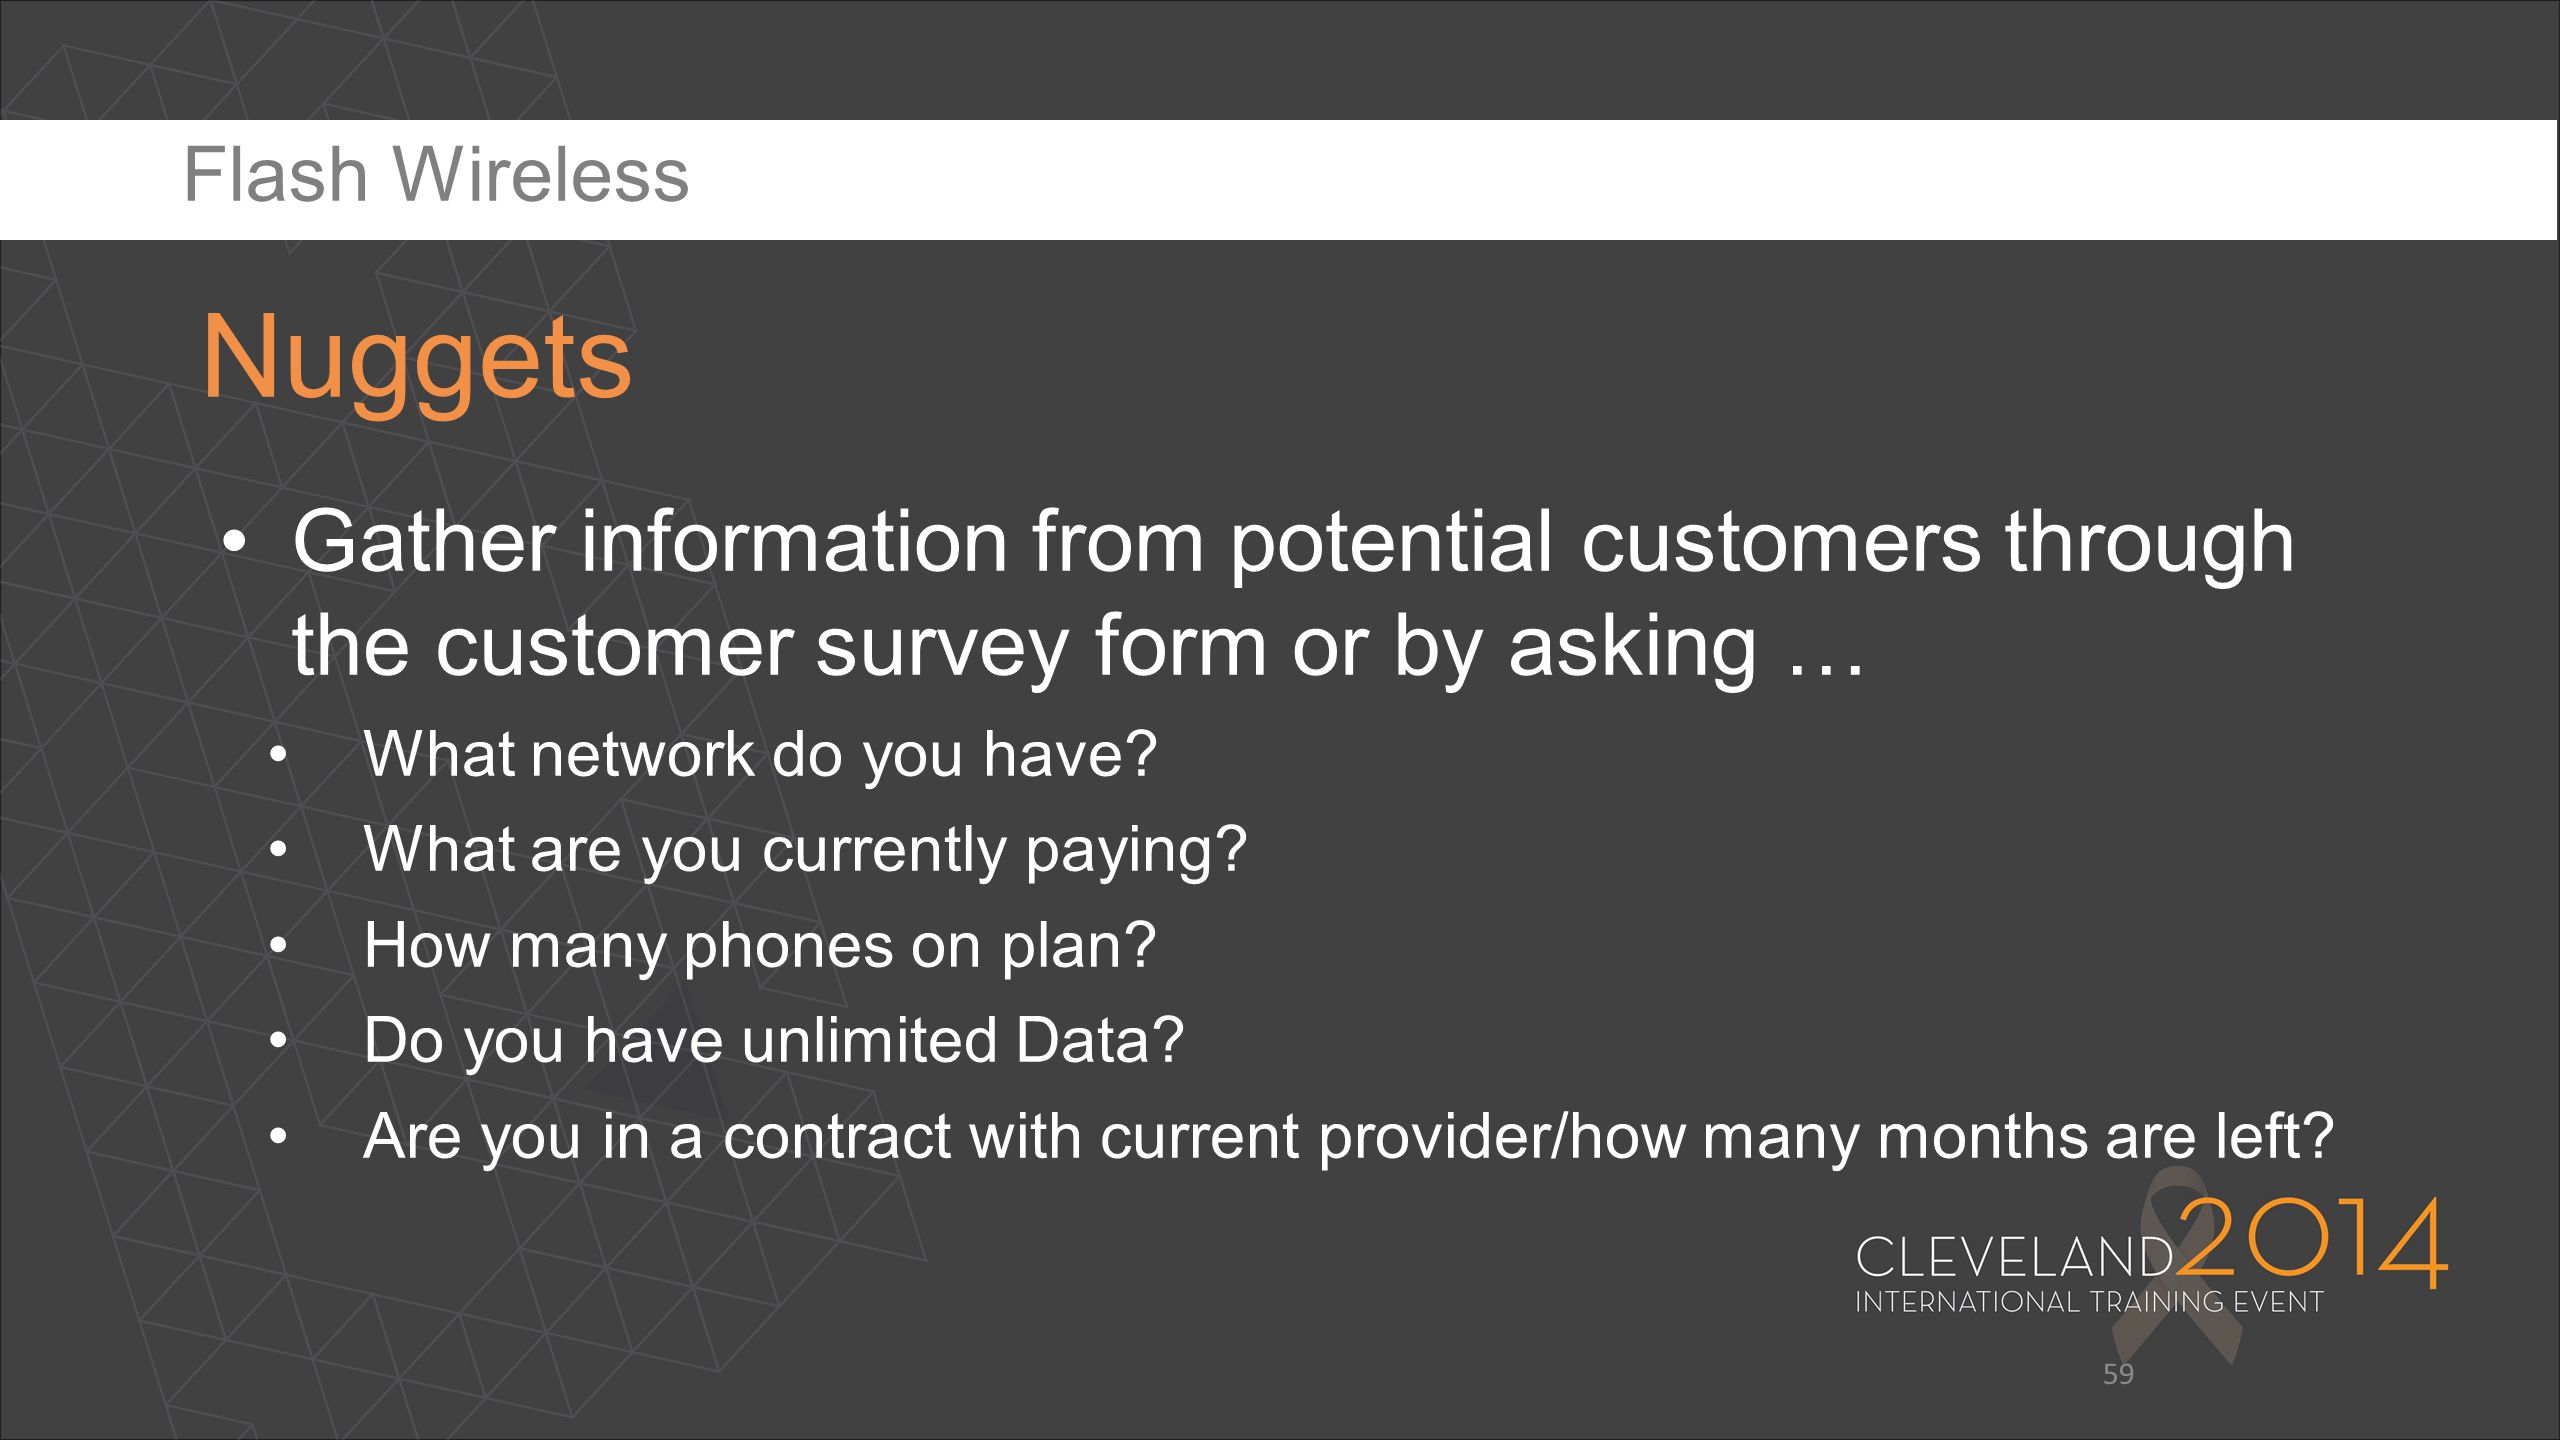 Flash Wireless Nuggets. Gather information from potential customers through the customer survey form or by asking …